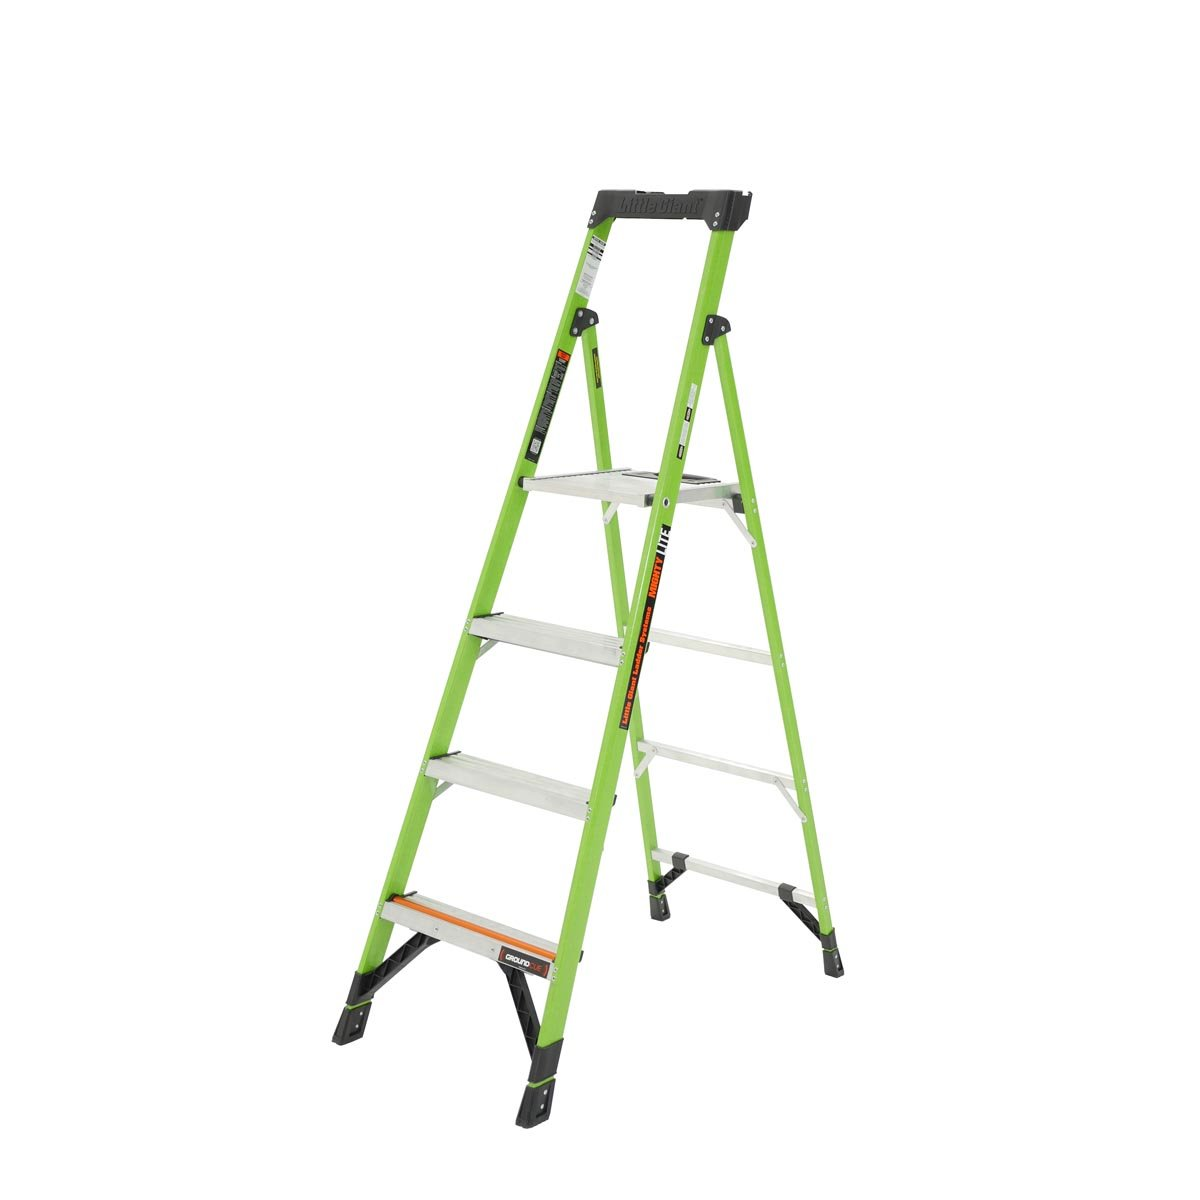 Little Giant® 15366-001 MightyLite 6 ft Step Ladder, 6 ft, 300 lbs, IA ANSI, Fiberglass